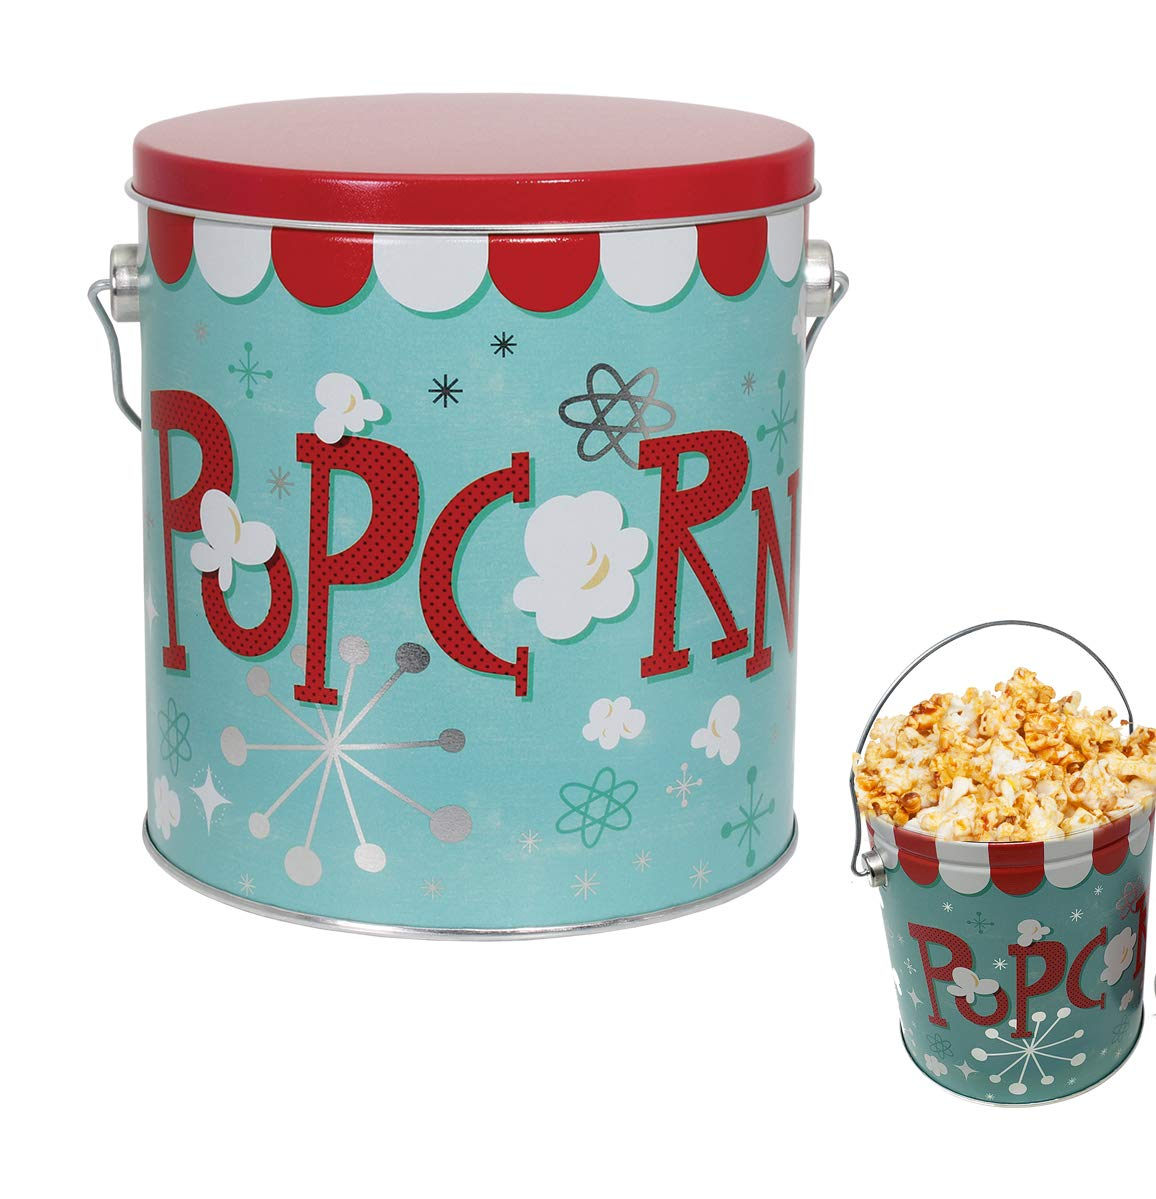 Premium Popcorn or Cookie Bucket | Container Tin | Metal | Extra Large | Jumbo 1 Gallon ChicagoT 0067